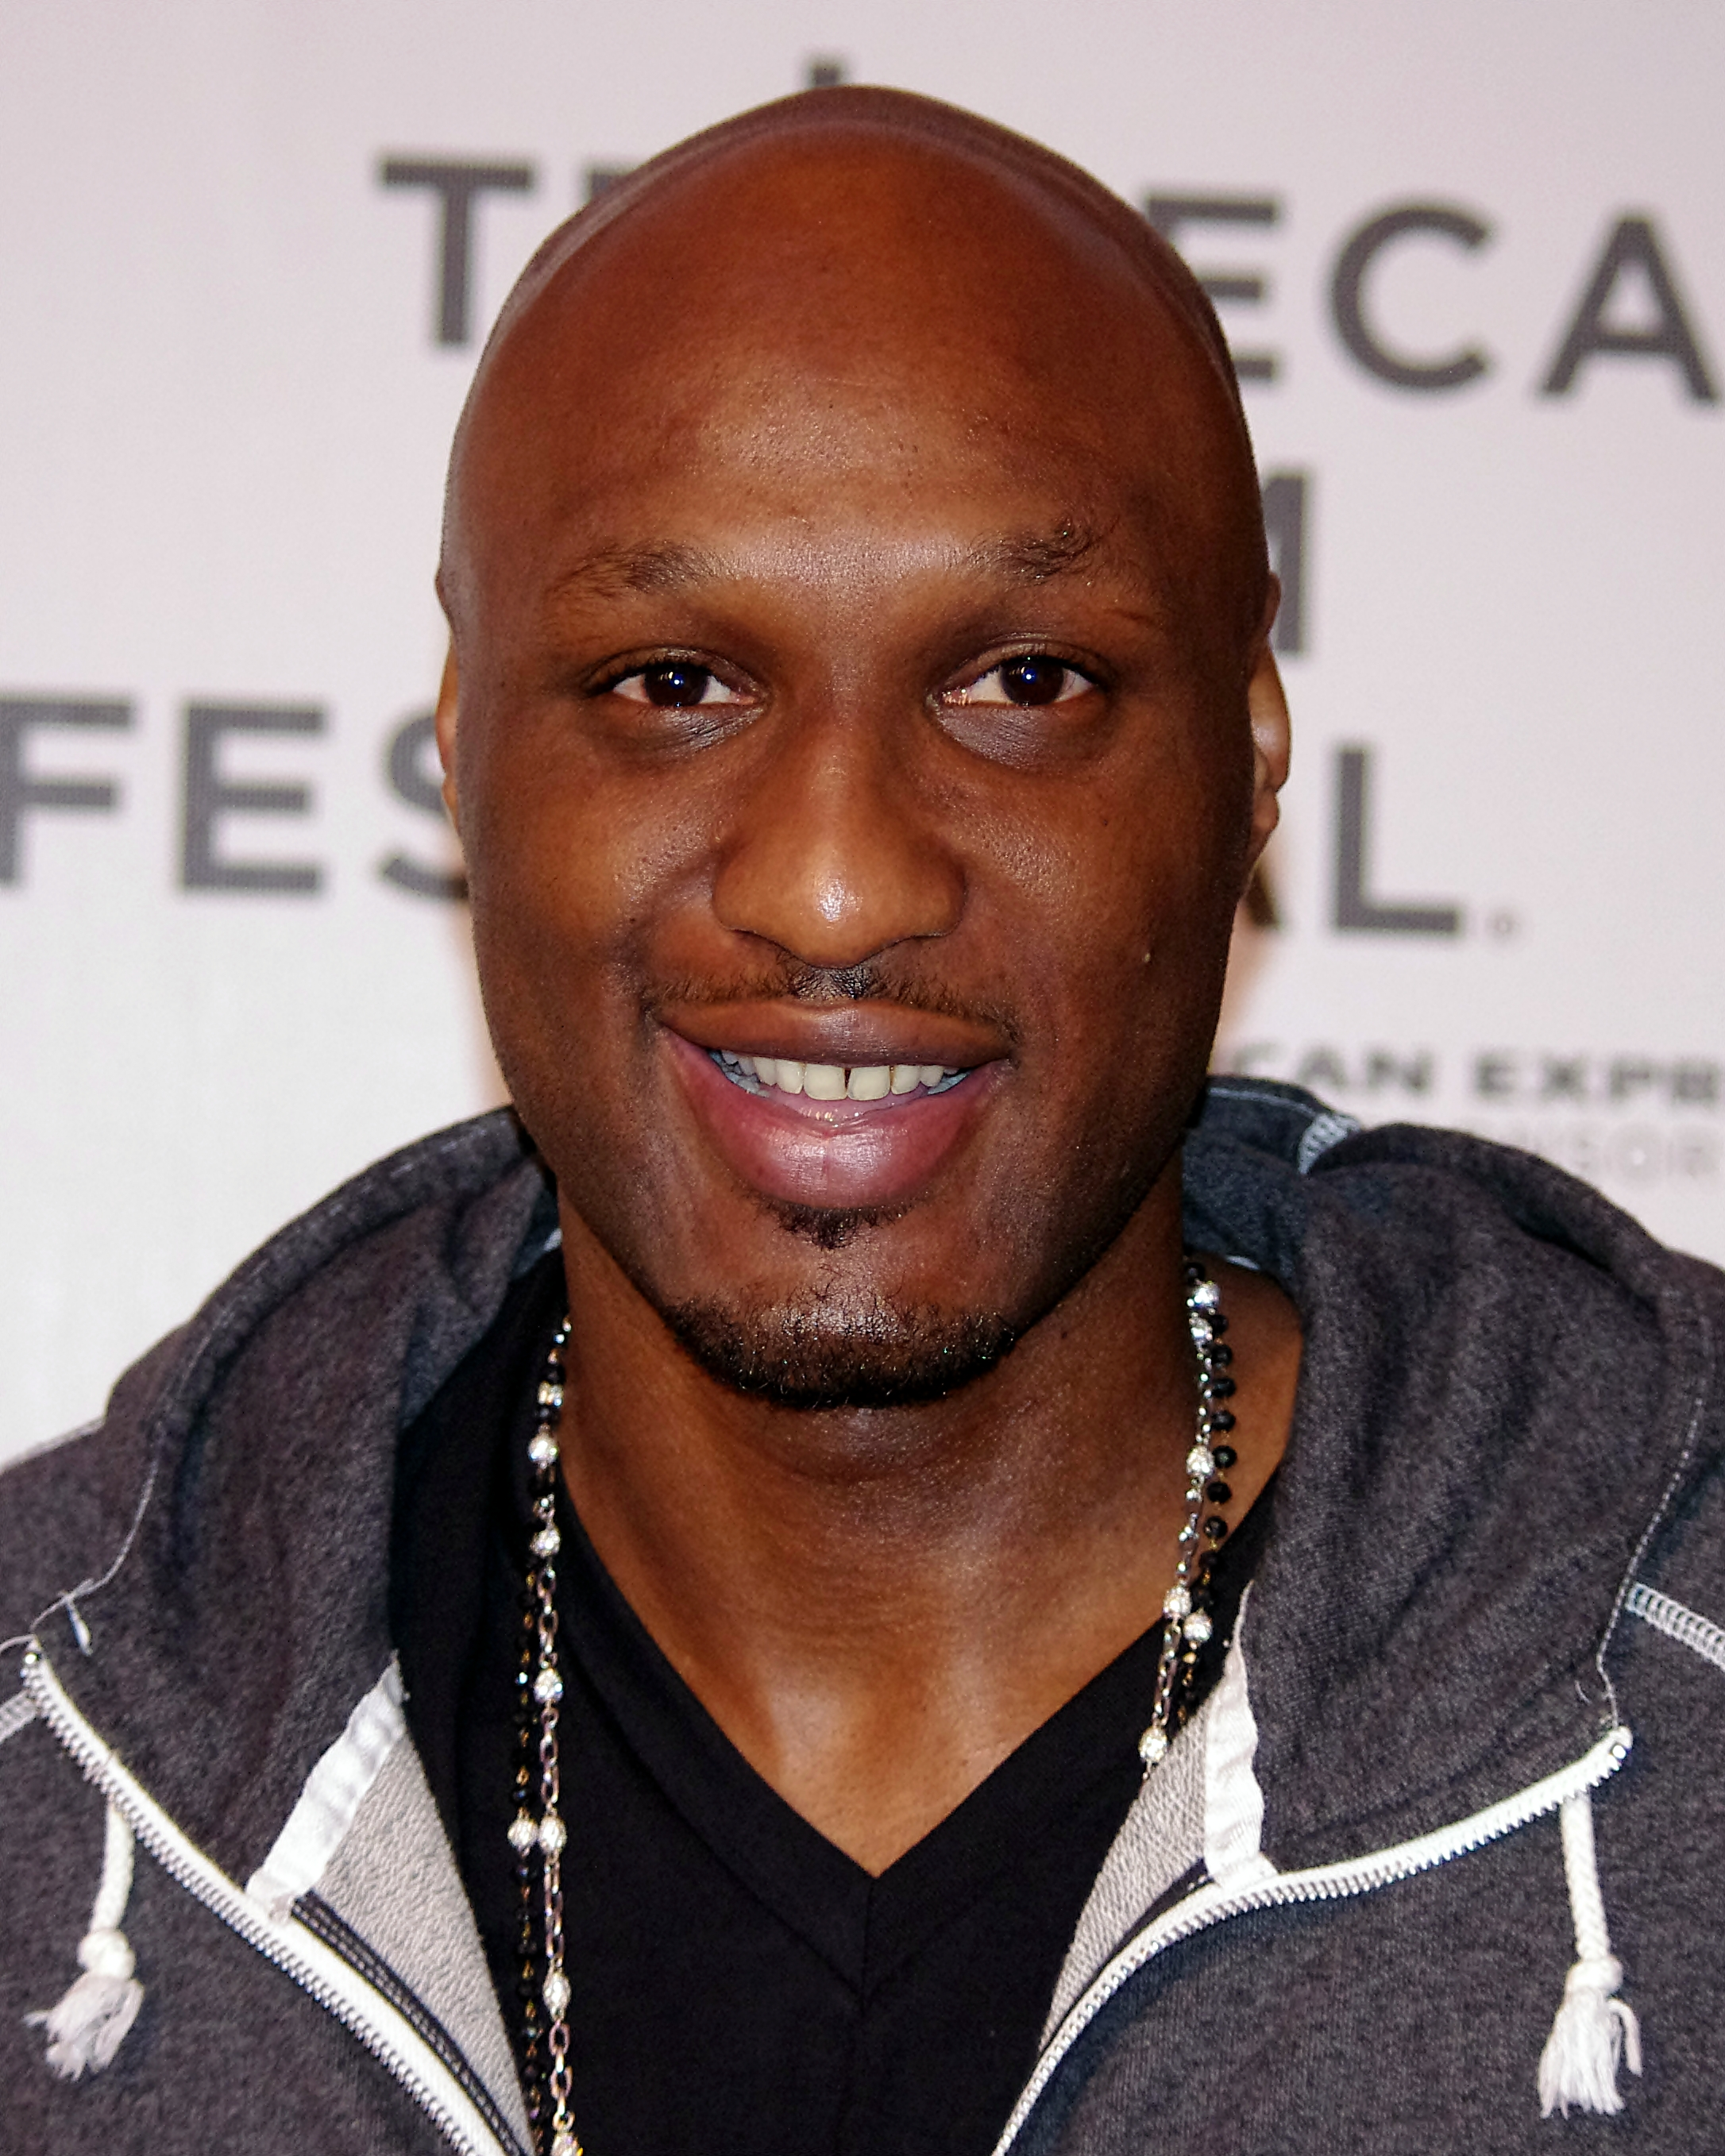 Lamar Odom pleads no contest to DUI, receives three years' probation